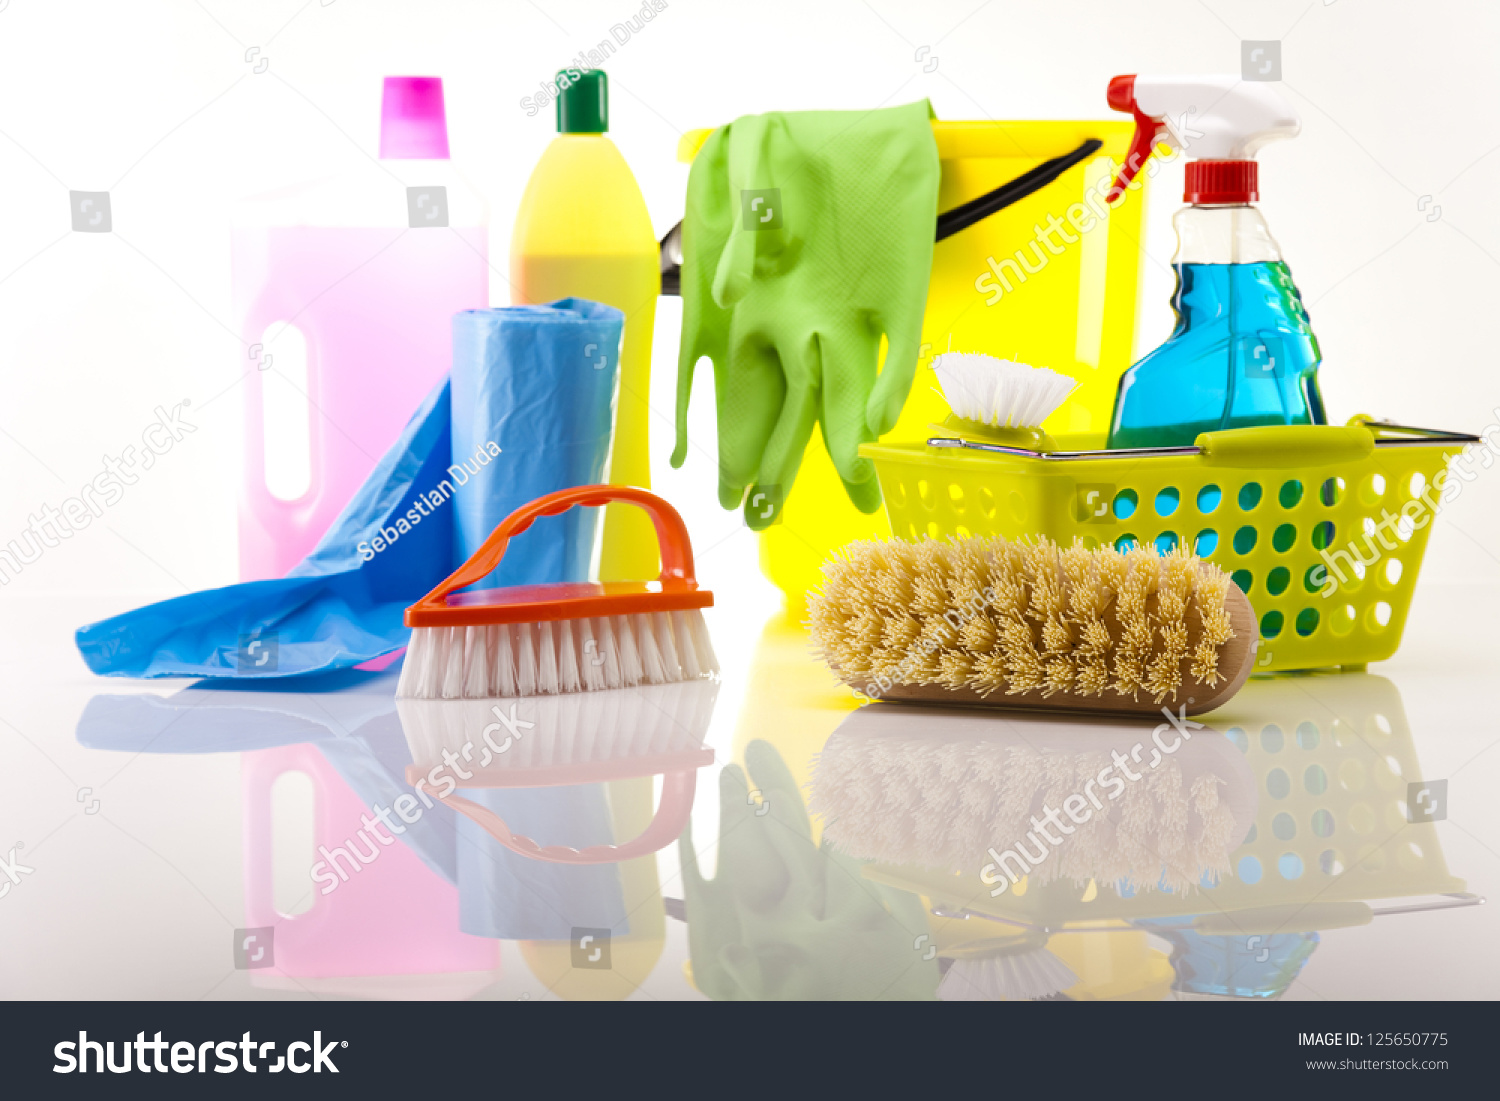 House cleaning product stock photo 125650775 shutterstock for House cleaning stock photos